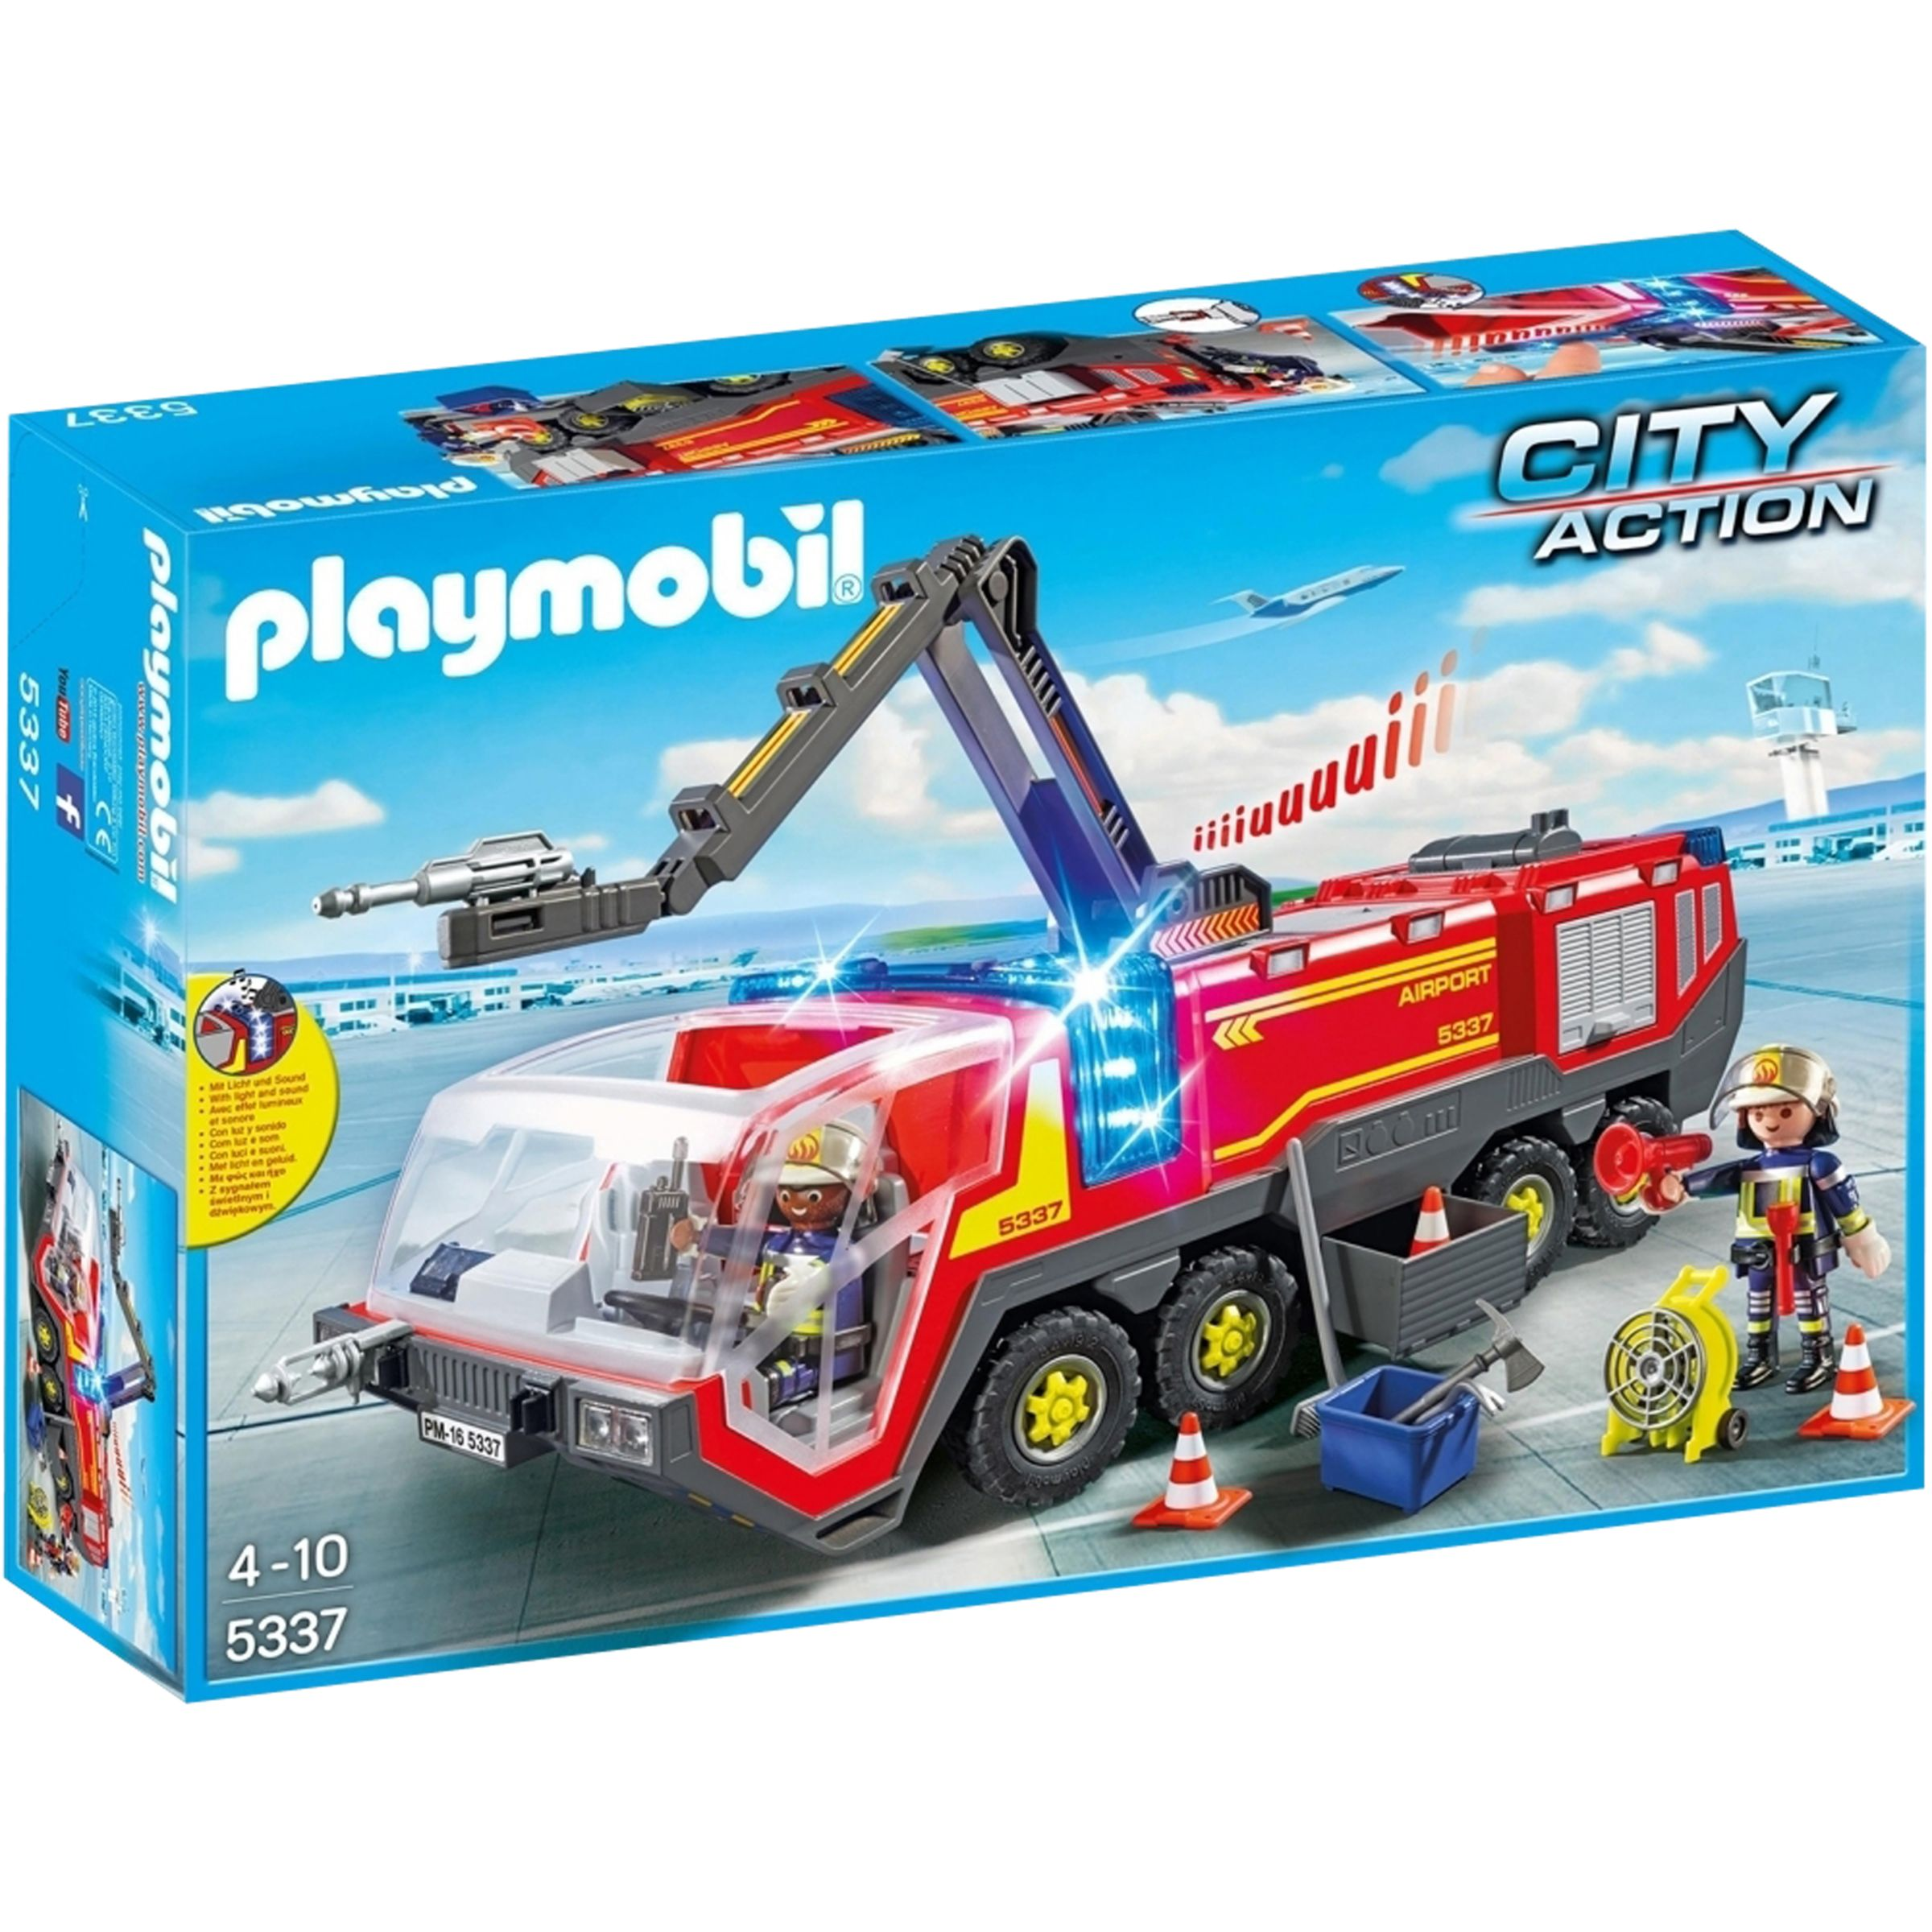 PLAYMOBIL Playmobil City Airport Fire Engine With Lights & Sounds